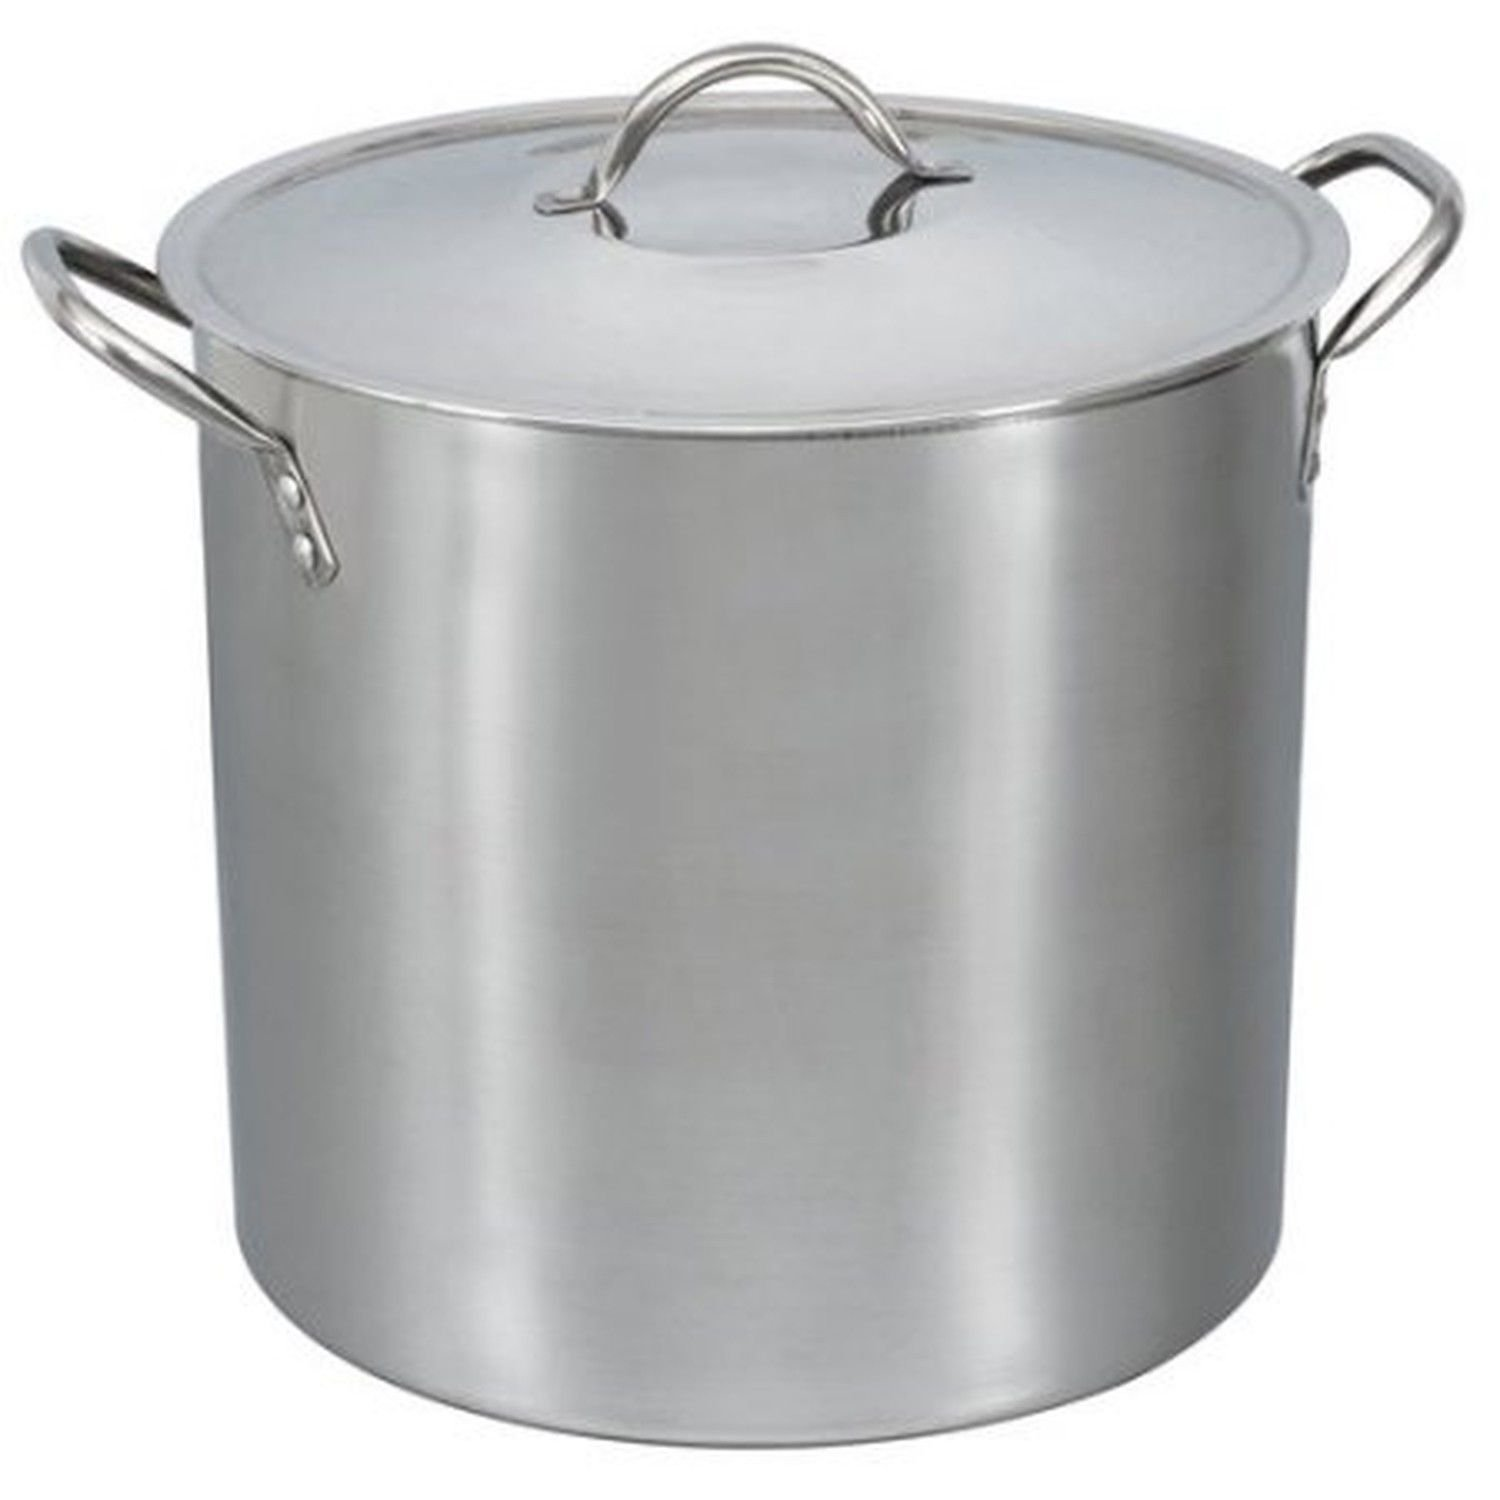 16-Qt Stainless Steel Stock Pot with Metal Lid New